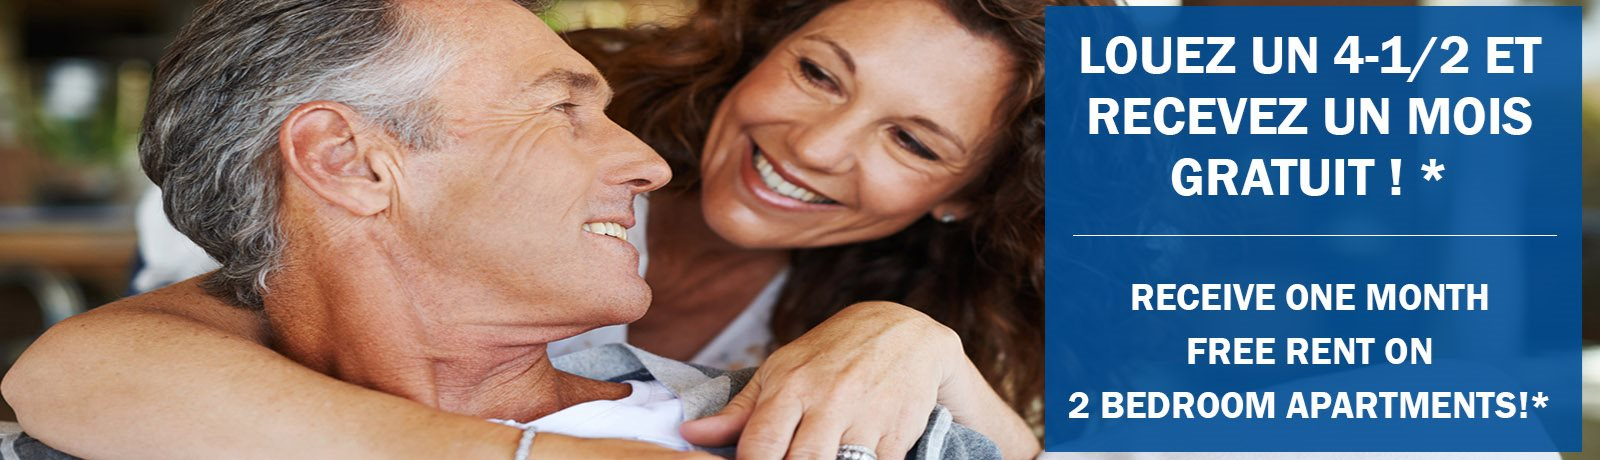 Woman hugging man from behind while both smile featuring one month free rent on 2-bedrooms